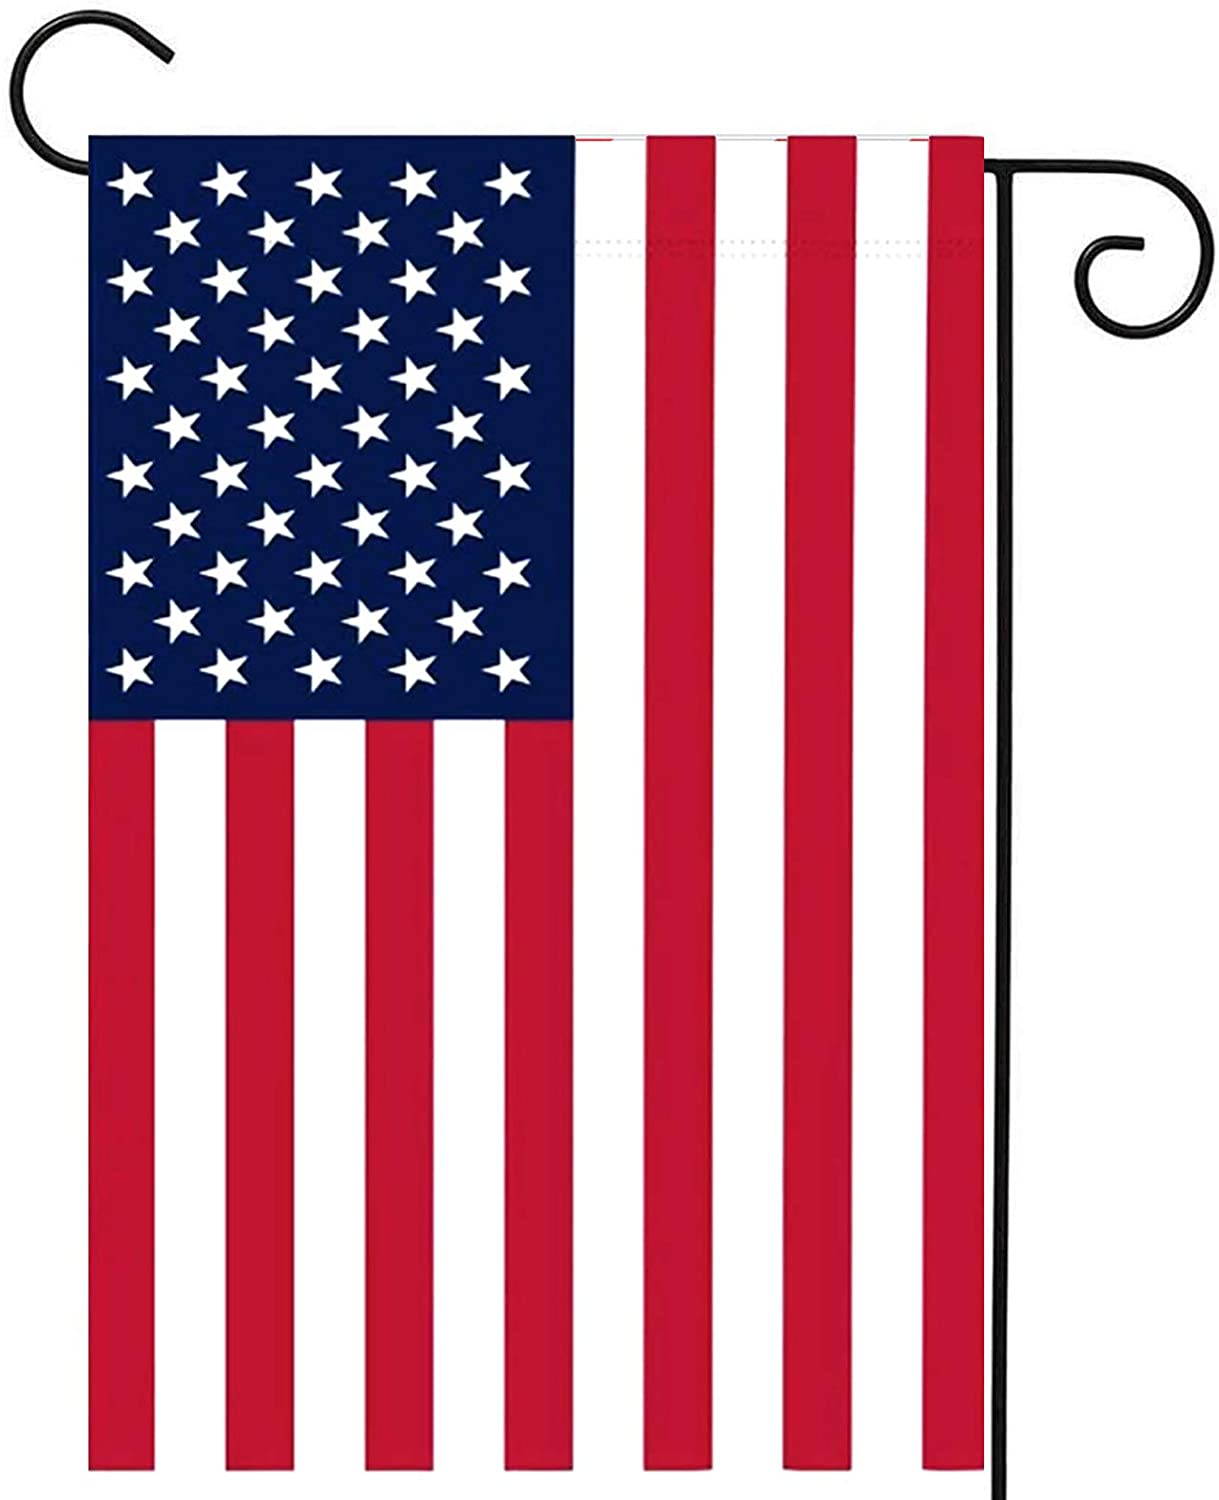 Homissor American Garden Flags 12.5 X 18.5 Inch- US USA 4th of July Double Side Yard Flag Banner Patriotic Outdoor Lawn Decoration(American Garden Flag)